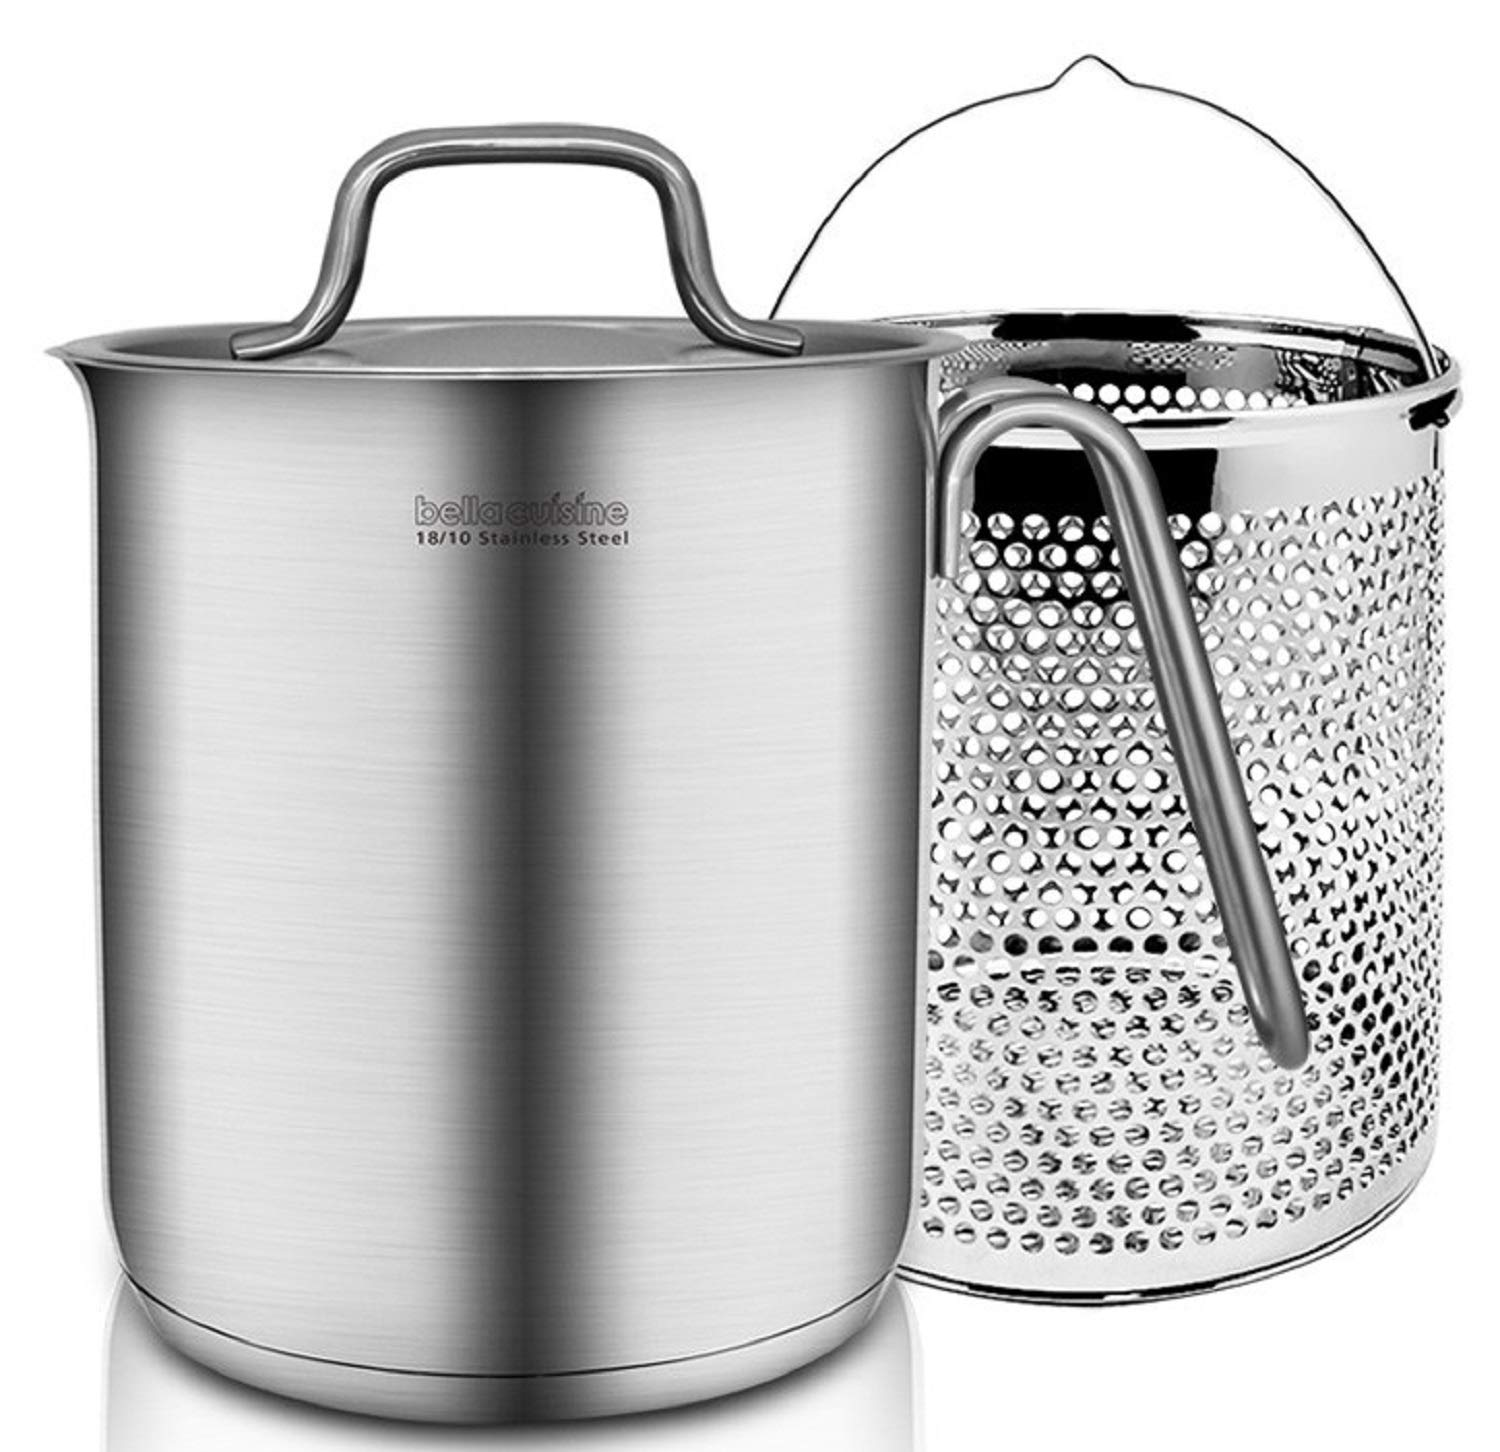 Bella Cuisine Stainless Steel Pasta Pot Multipot Steamer 3.5L 16cm with Strainer Induction Range available